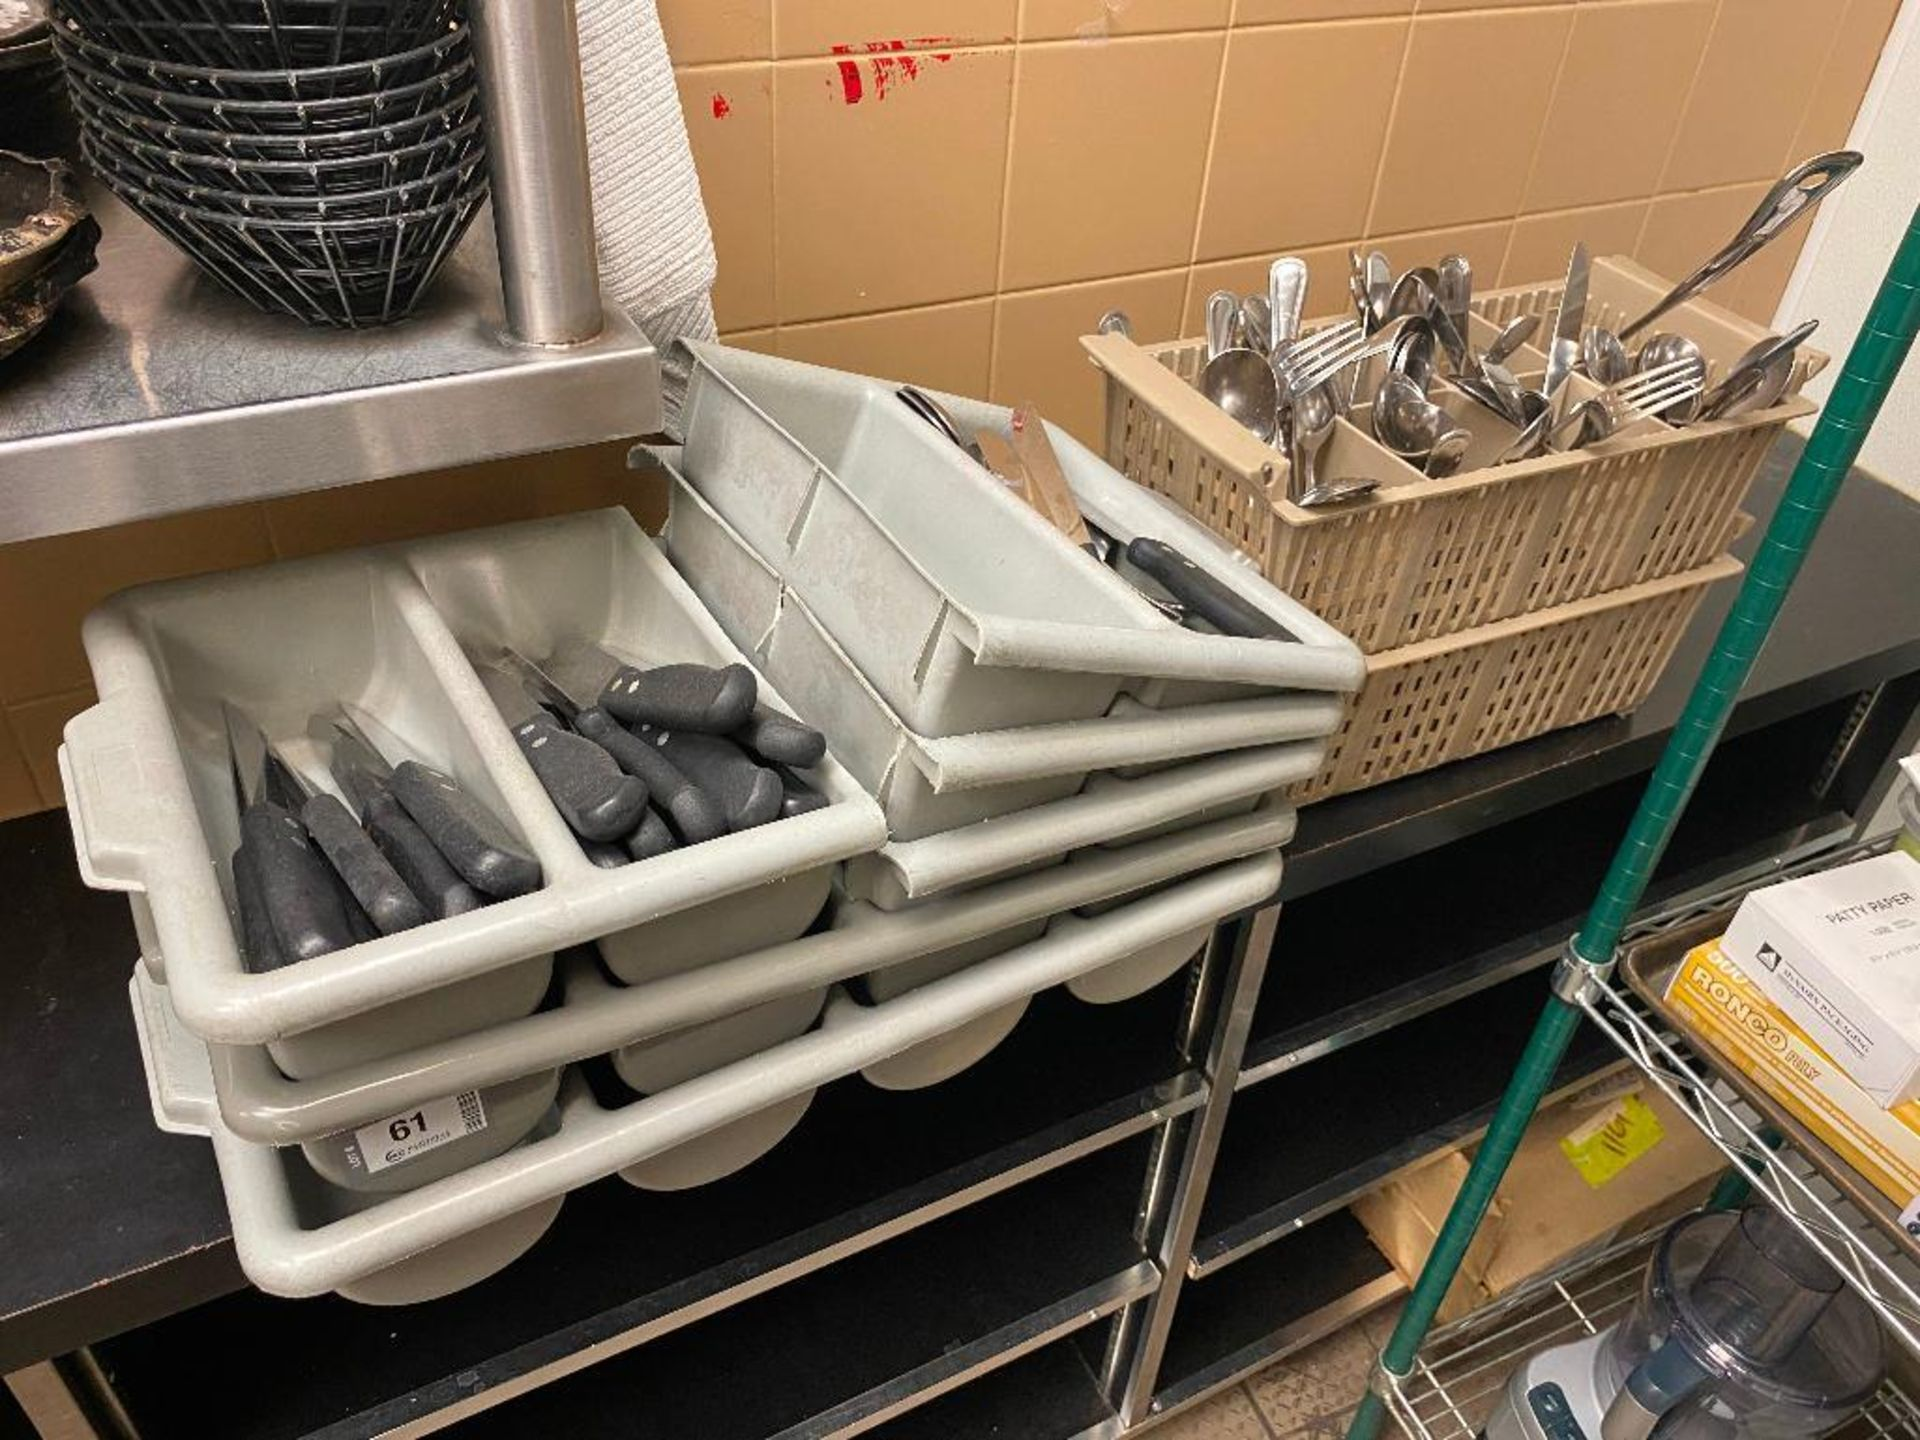 LOT OF ASSORTED SILVERWARE INCLUDING VOLLRATH STEAK KNIVES